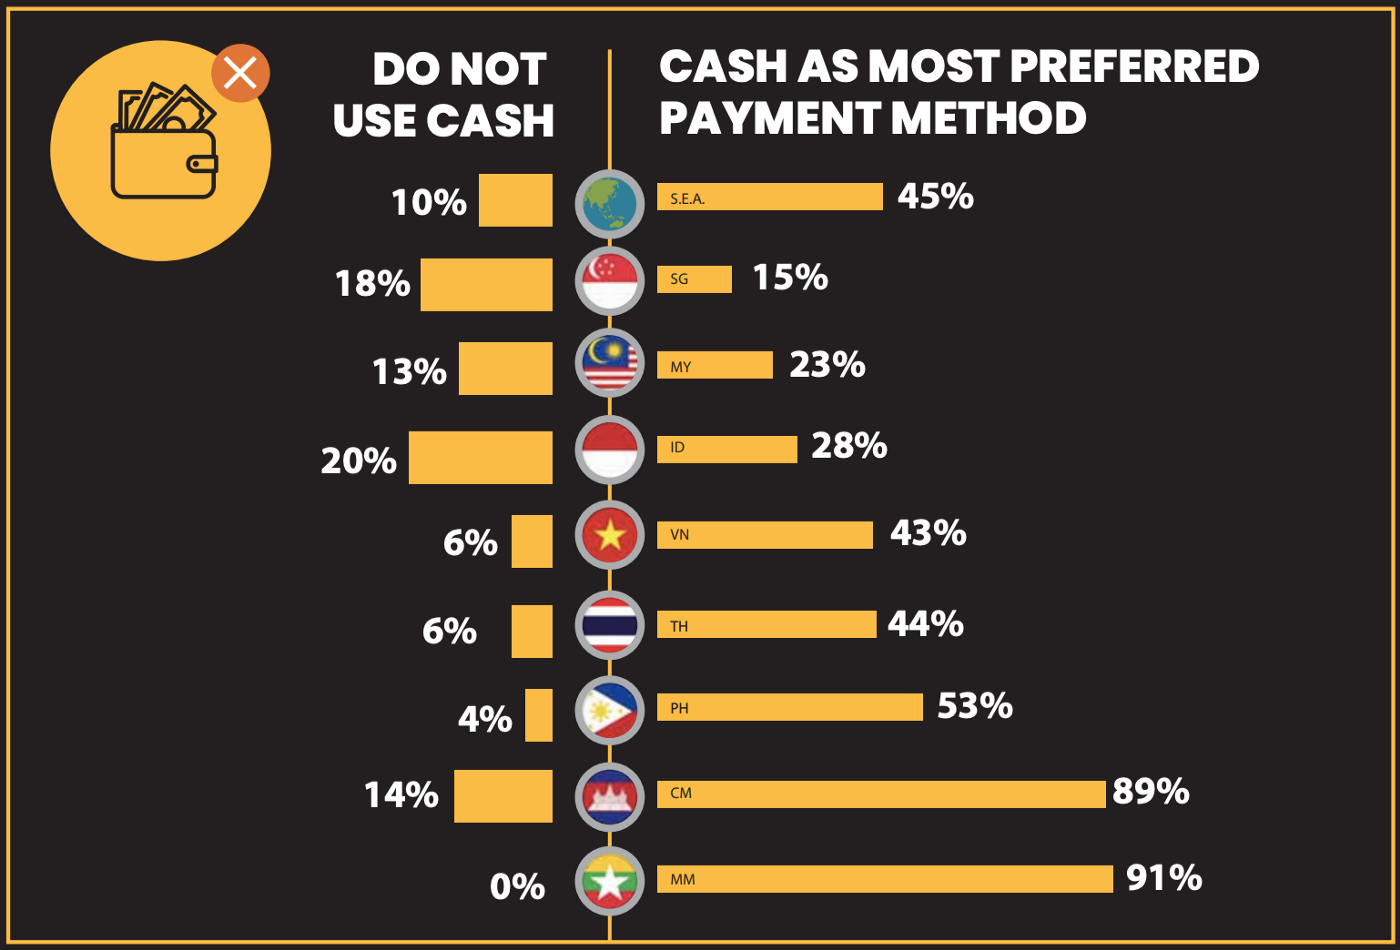 cash as most preferred payment method